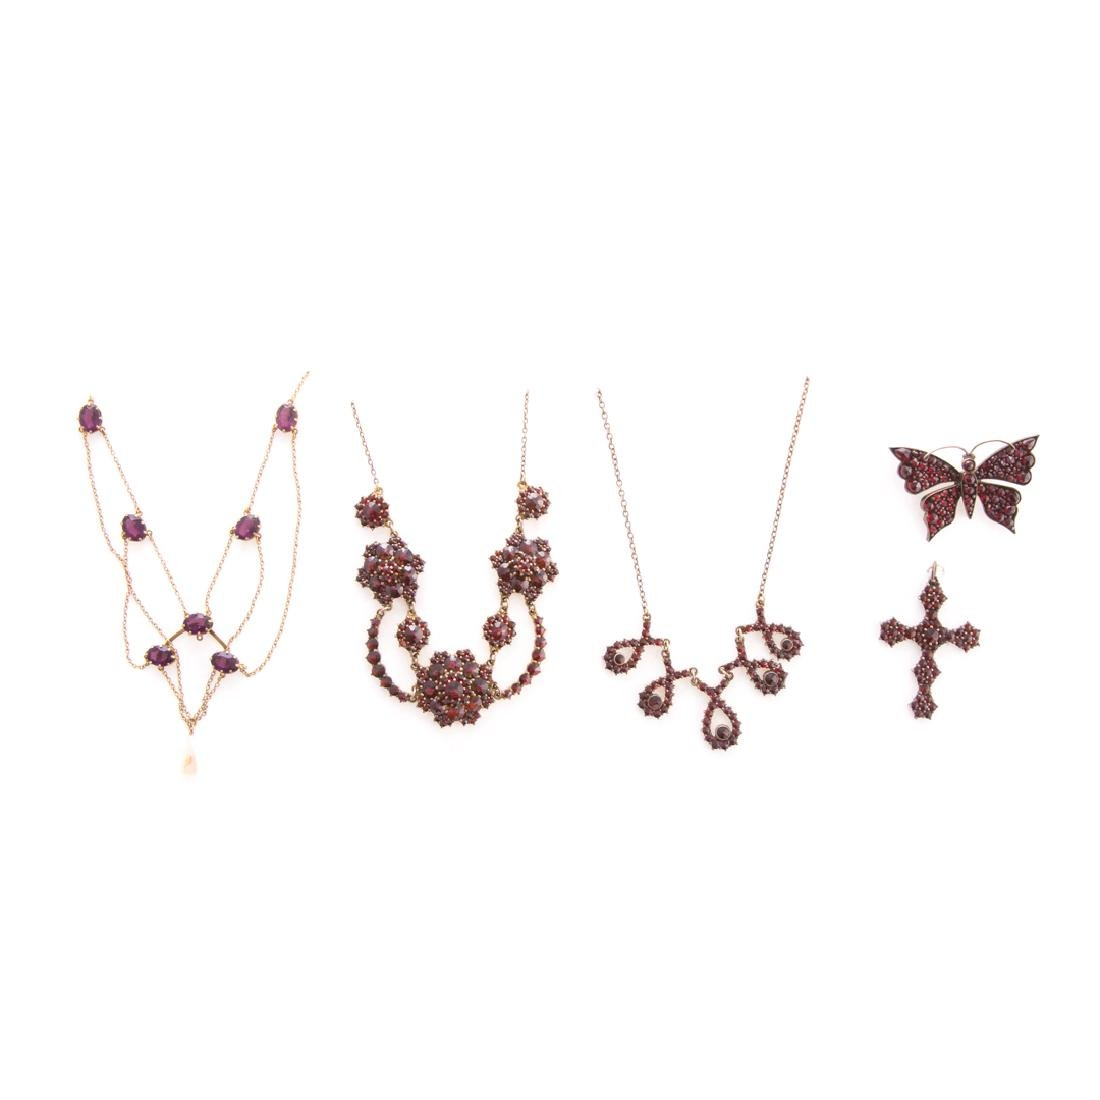 A Collection of Garnet & Amethyst Pins & Necklaces